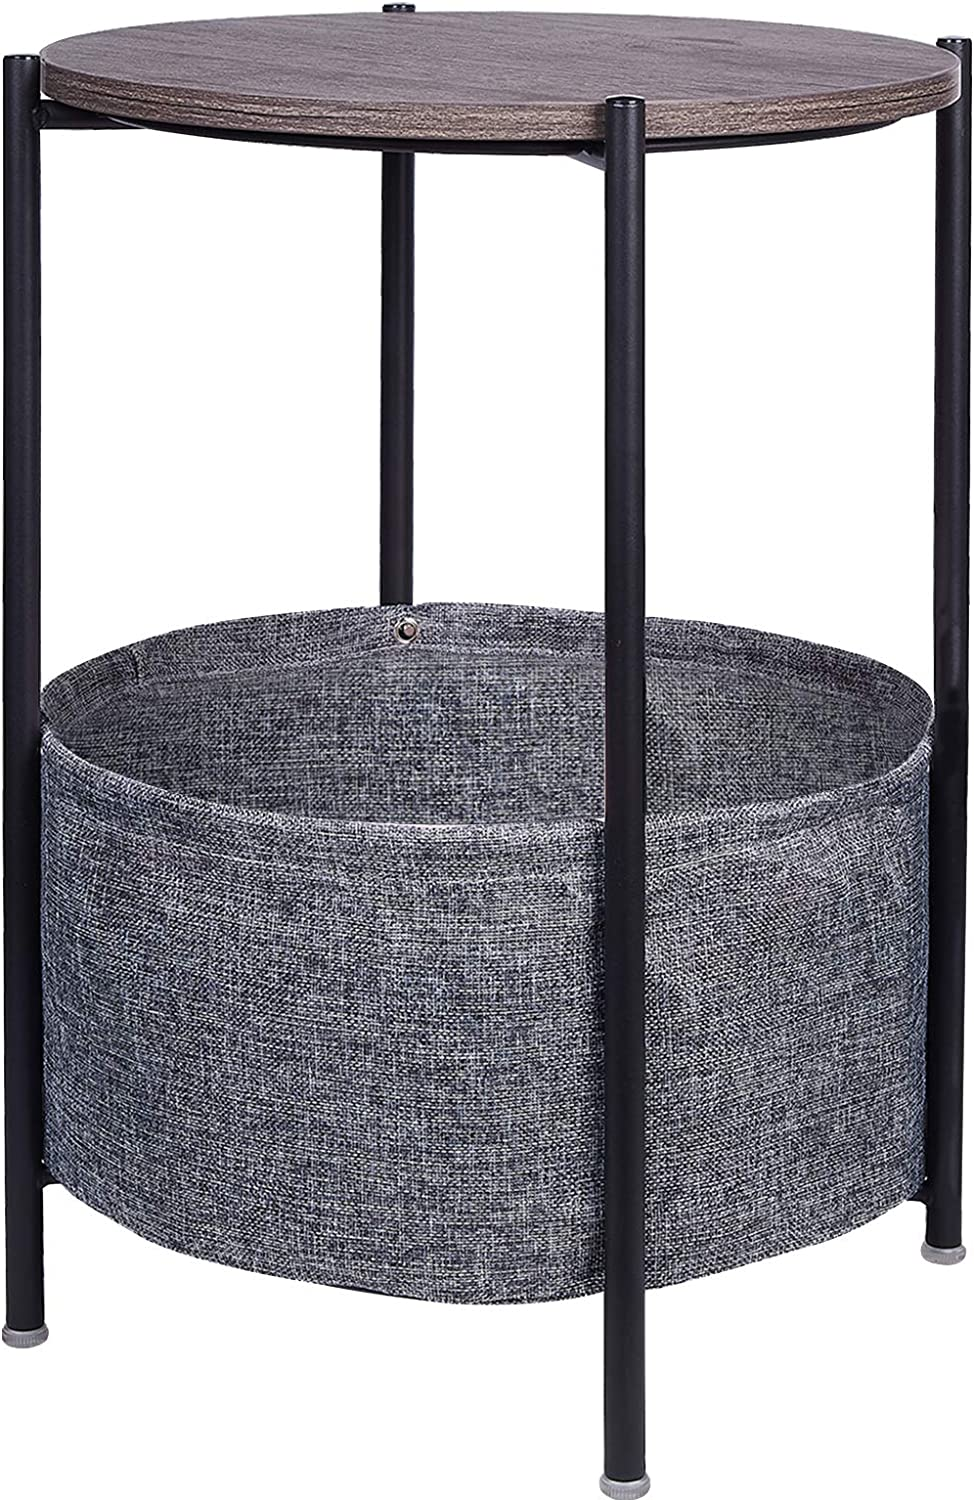 Jane Eyre Round Side Table With, Round End Tables With Storage For Living Room